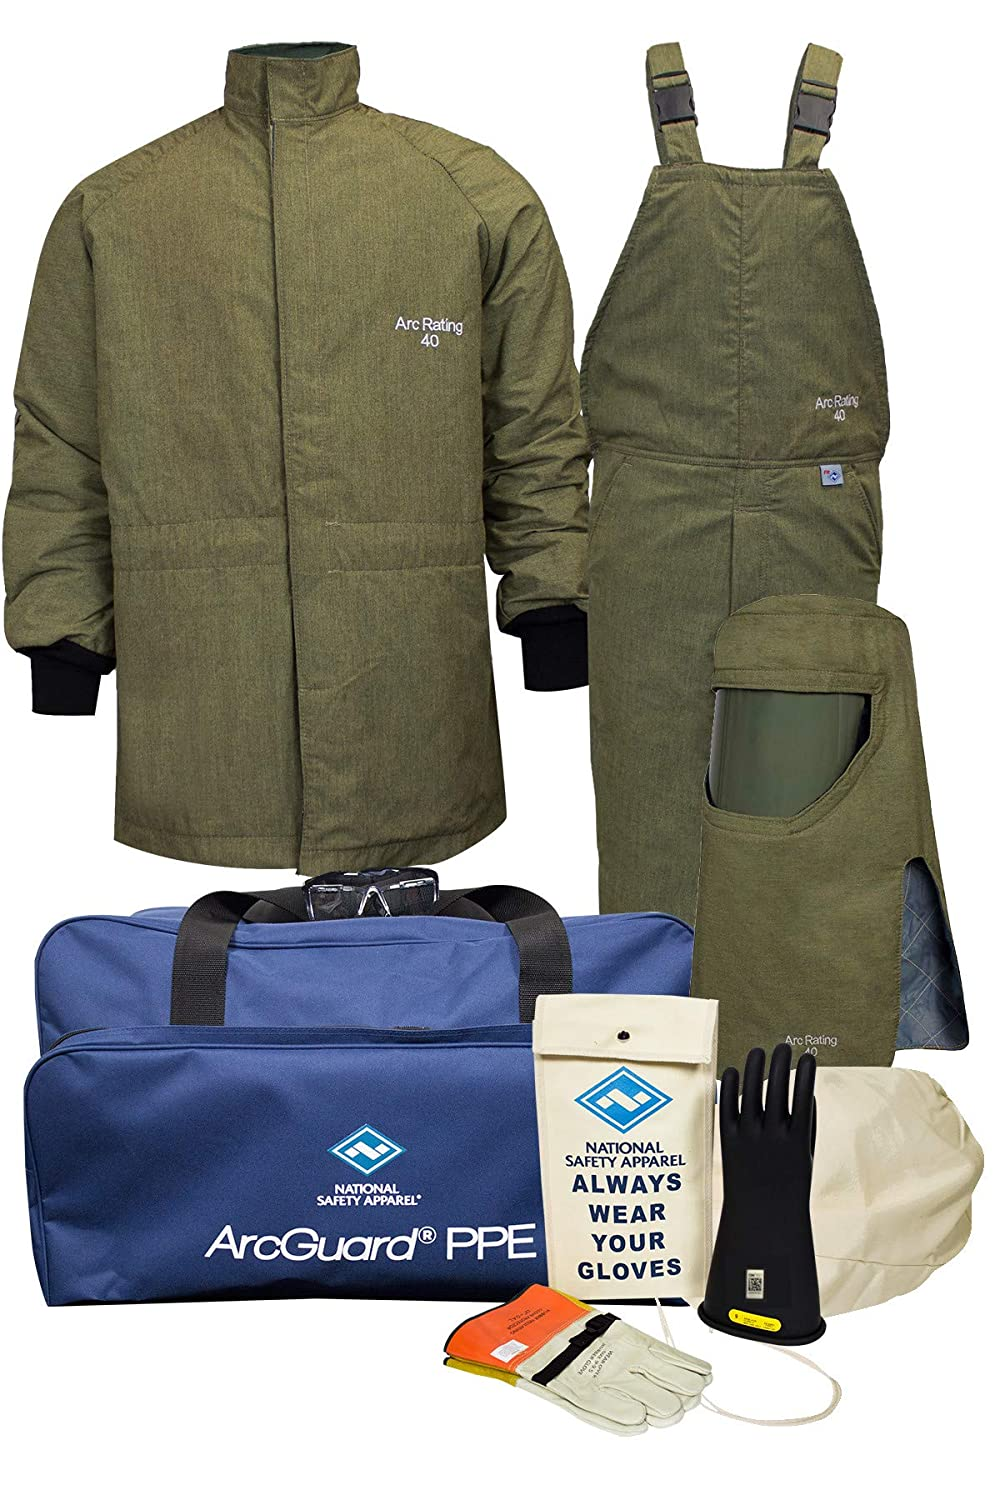 National Safety Apparel KIT4SCLT403X09 ArcGuard RevoLite CAT 4 Arc Flash Kit with FR Short Coat and Bib Overall, 40 Calorie, 3X-Large/Glove Size 9, Olive Green